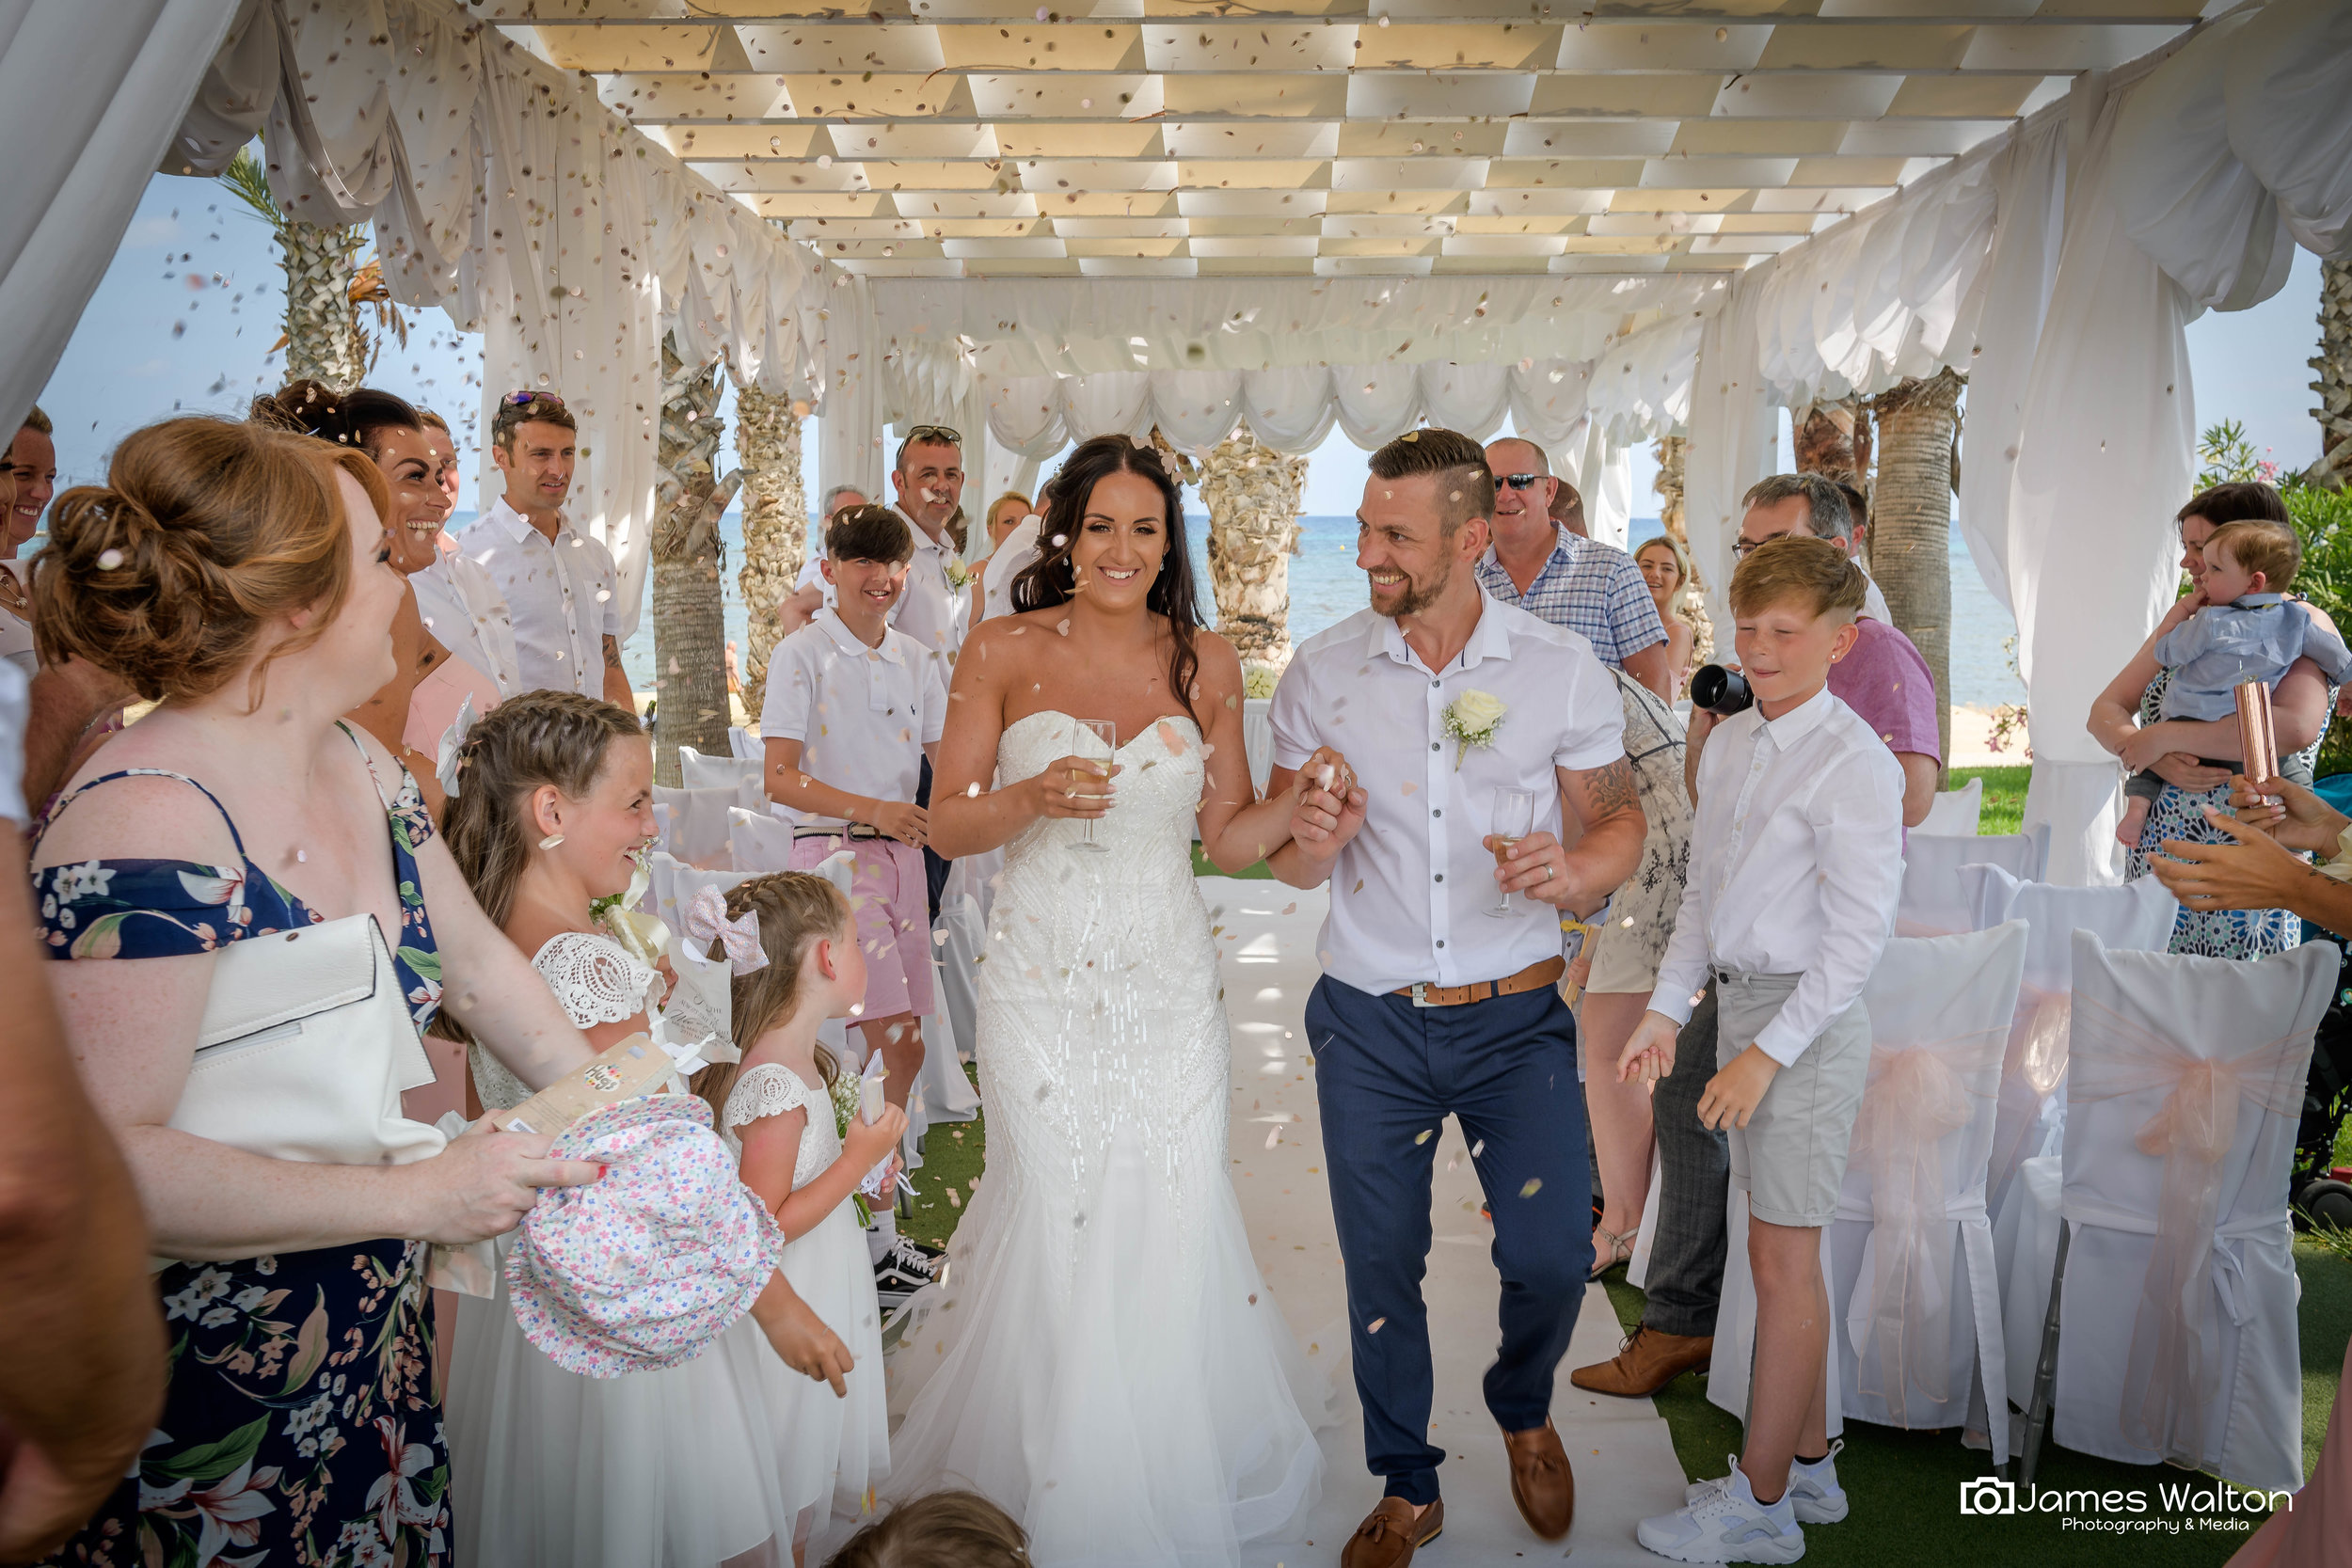 Fab from start to finish... used for photos and video. Excellent professional work... Thankyou for capturing some precious memories. - Jenna Wilkinson - 2018 - Phaeton Beach Paphos